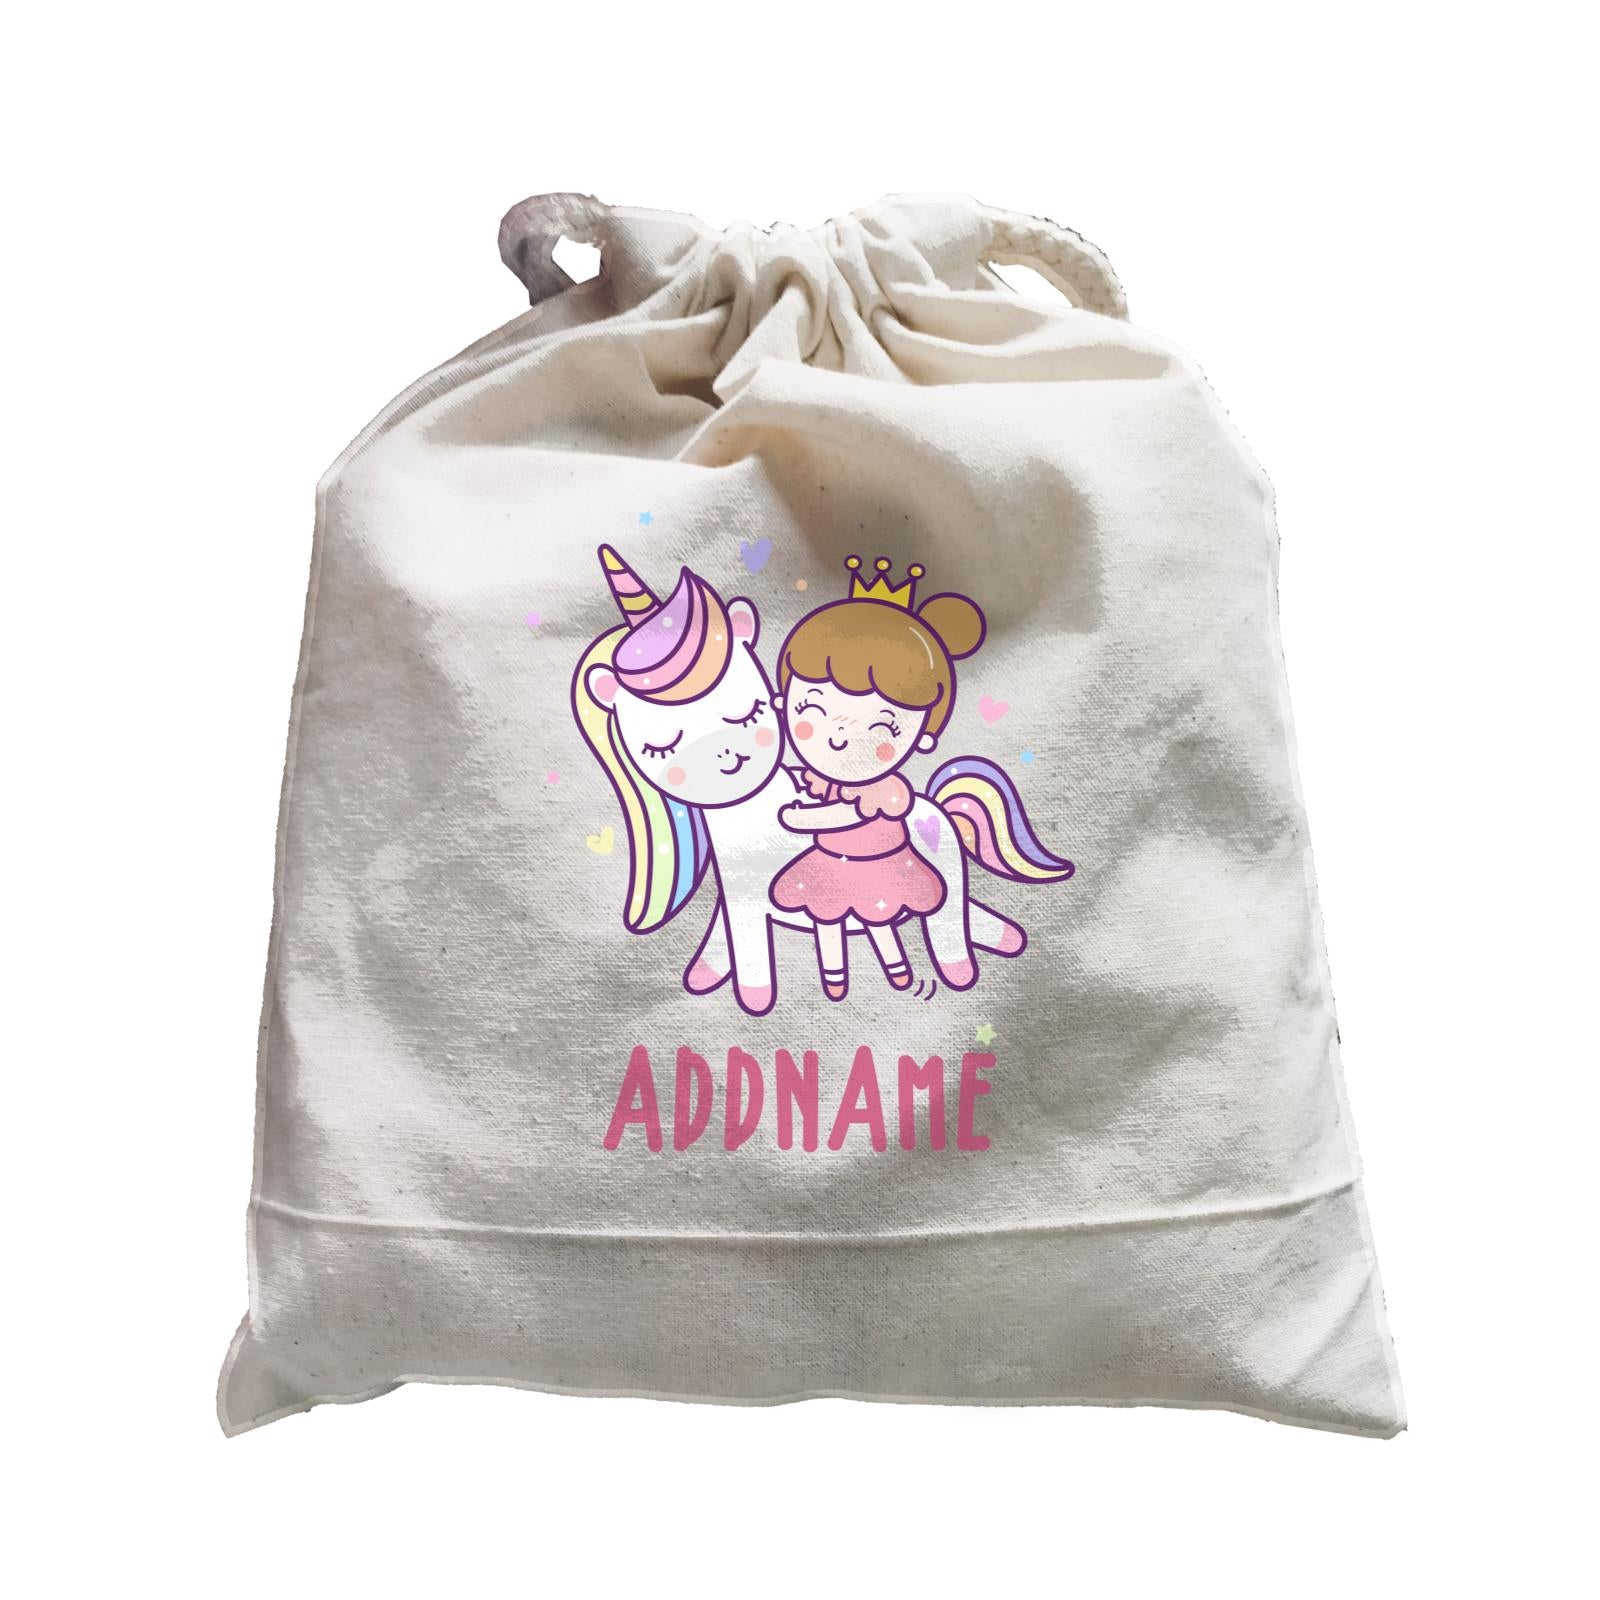 Unicorn And Princess Series Cute Unicorn With Princess Addname Satchel